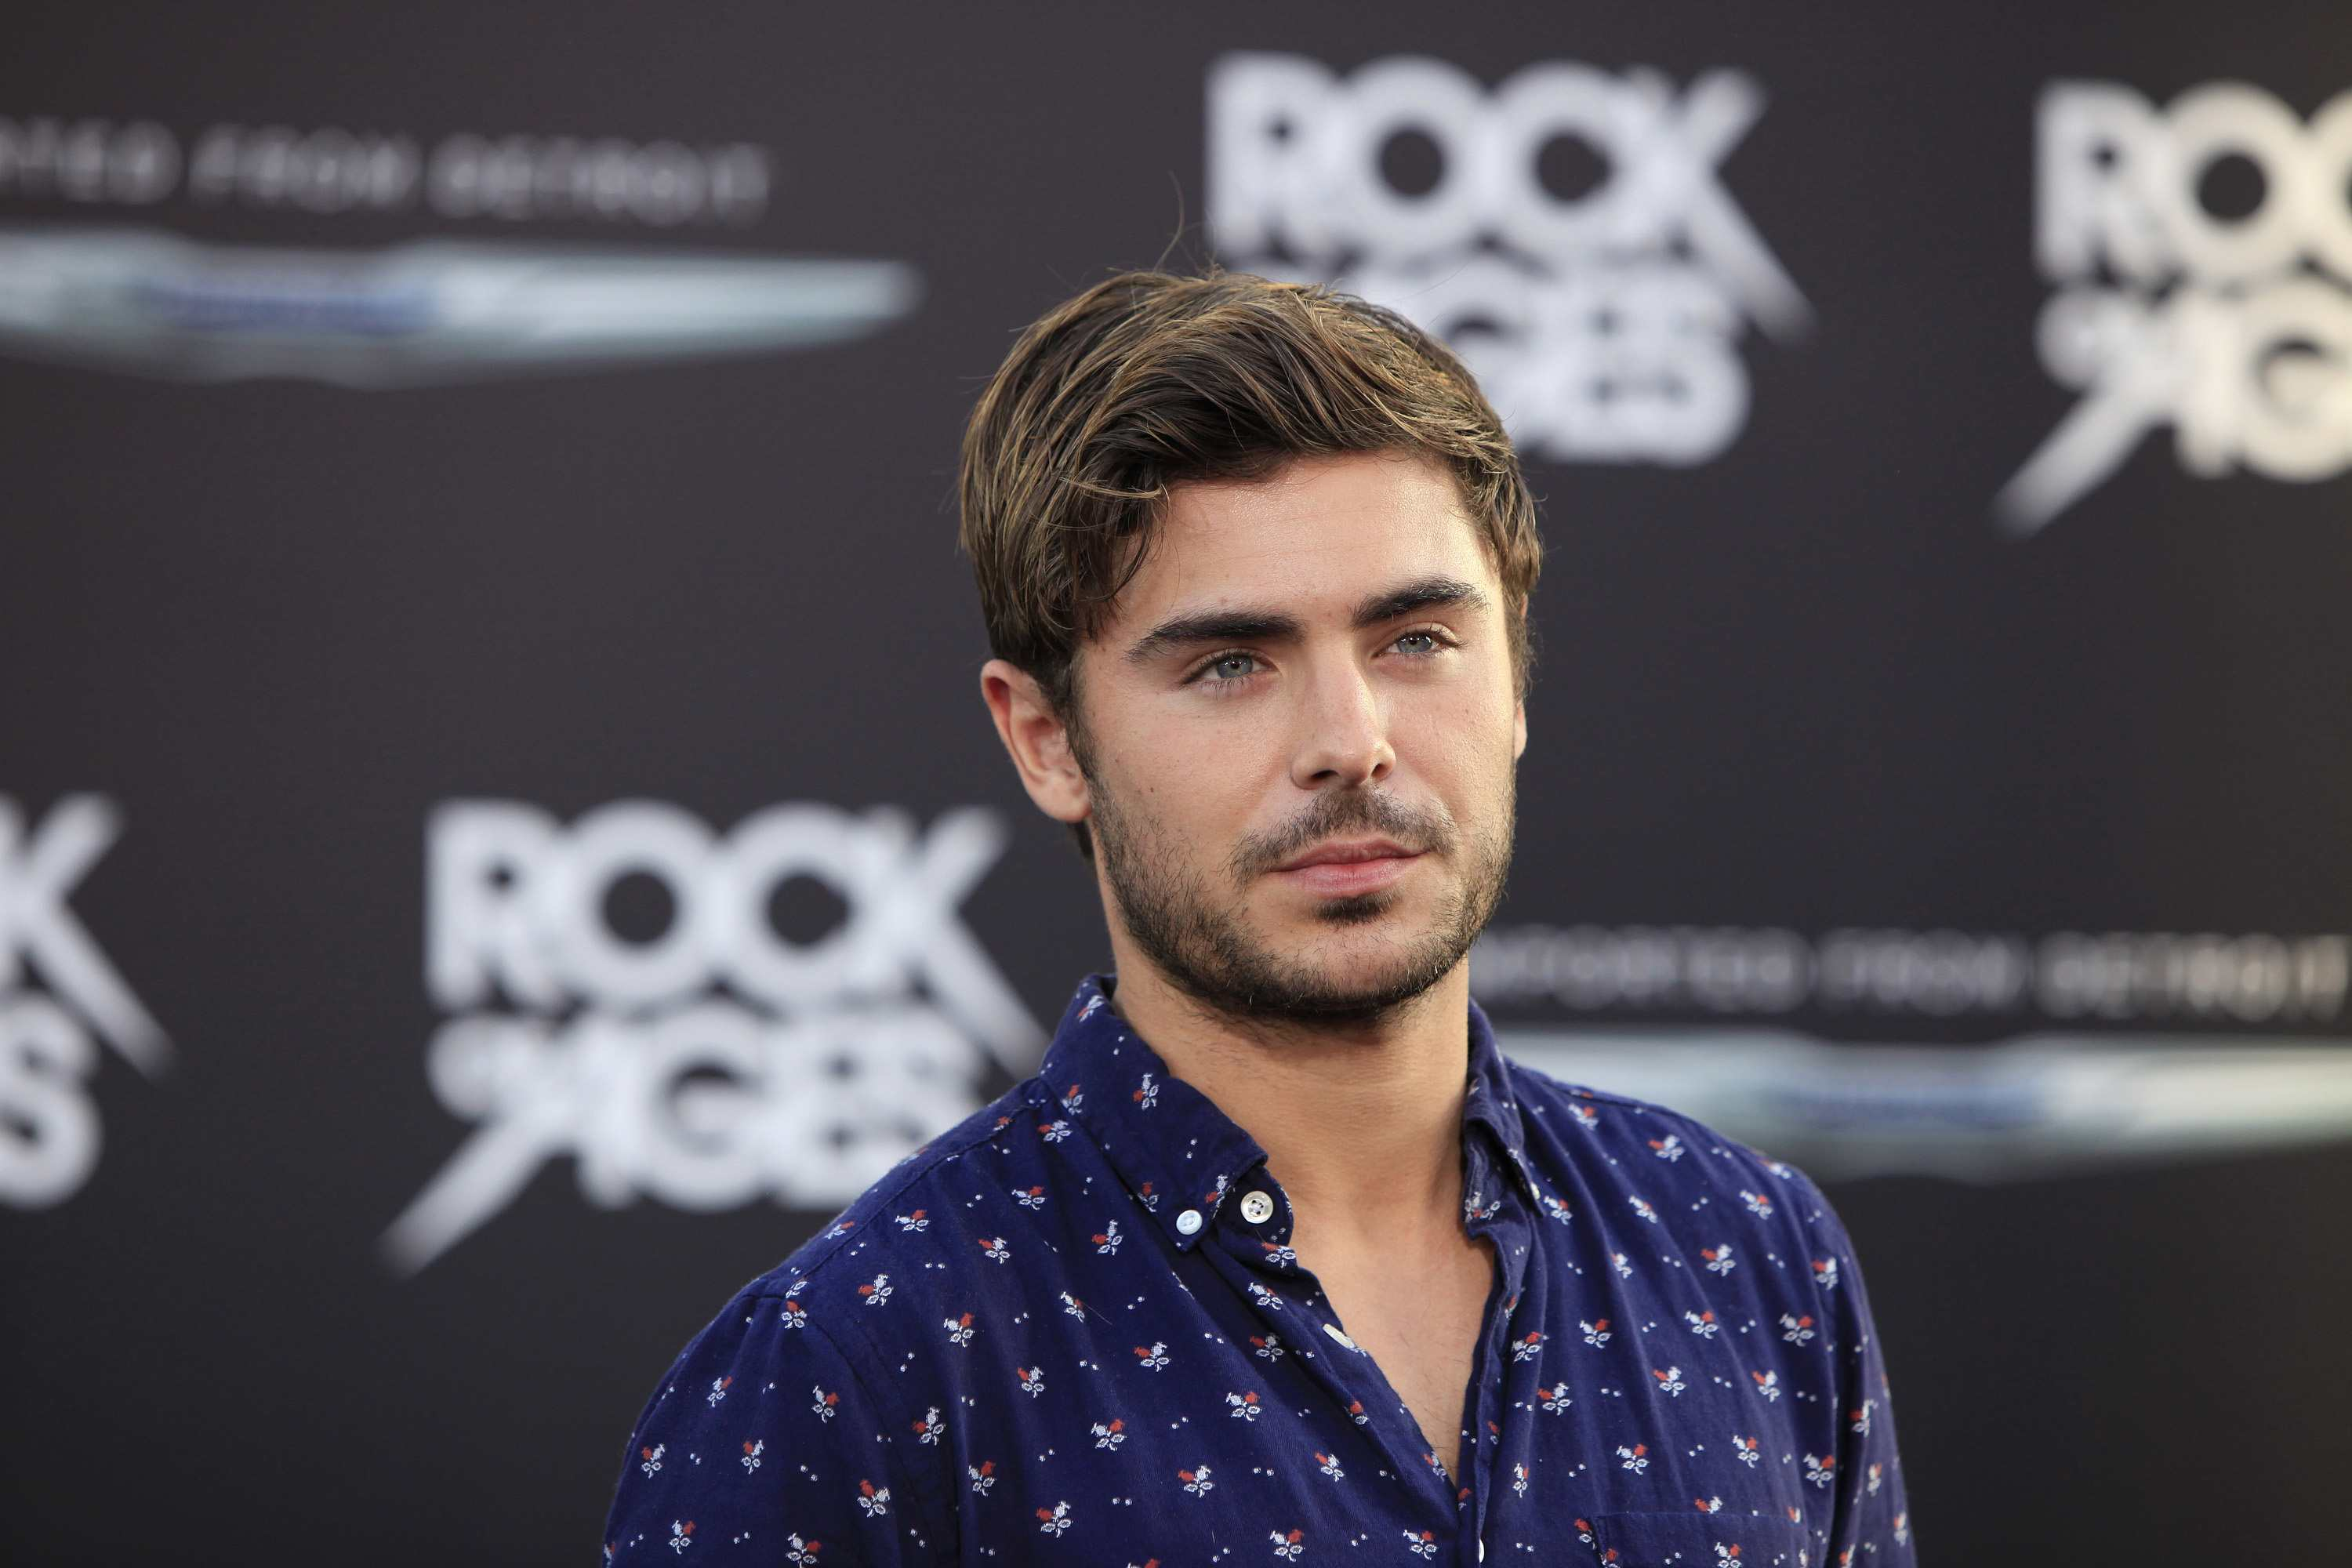 Zac Efron has spoken on how he deals with anxiety TheFuss.co.uk